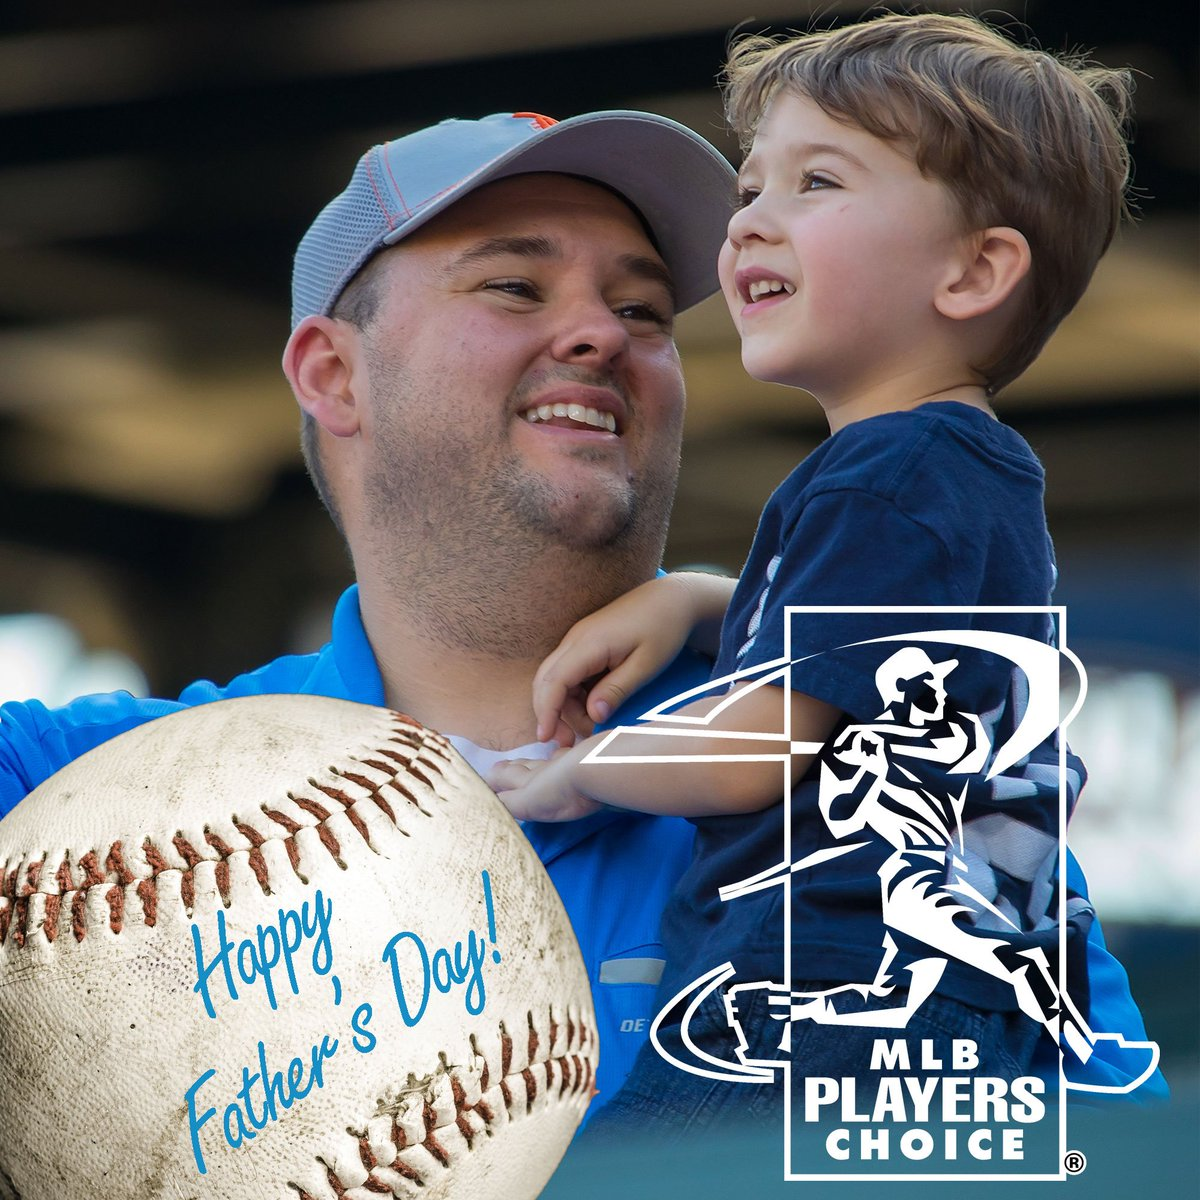 From our #clubhouse to yours, we wish all dads a very happy #FathersDay !  Thanks for all those baseball memories!  Enjoy your day!<br>http://pic.twitter.com/AzkZzTP1QD